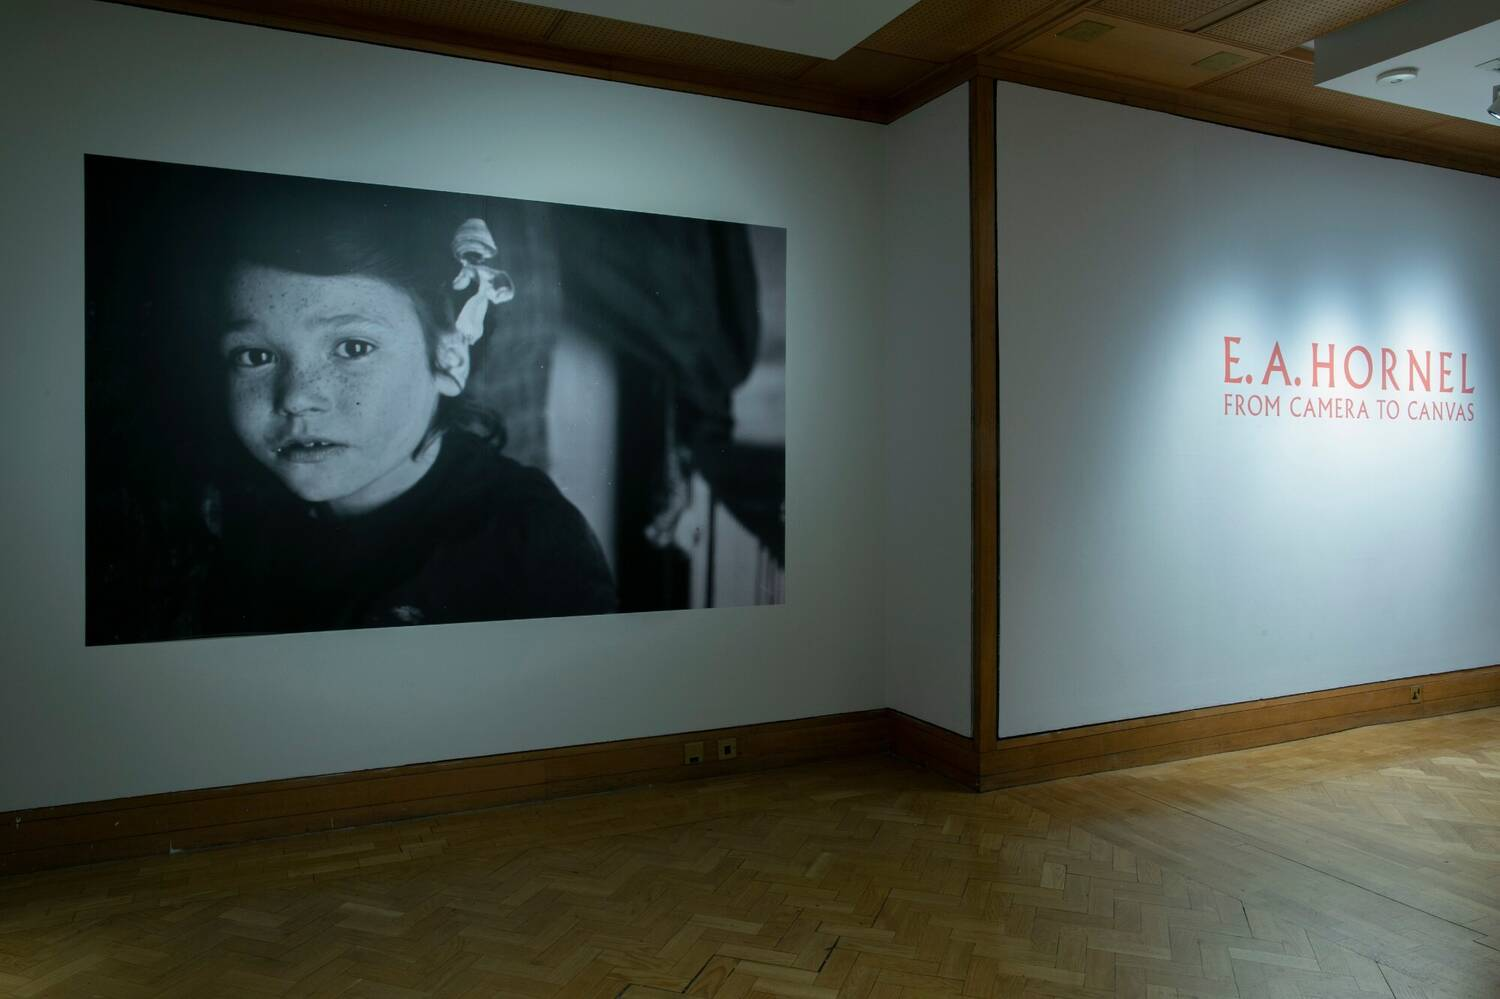 A white wall and wooden parquet floor in a gallery. The left-hand side of the wall is filled with a black and white photo of the bust of a girl staring out at the viewer. On the right-hand side is the text: 'E. A. Hornel: From Camera to Canvas'.